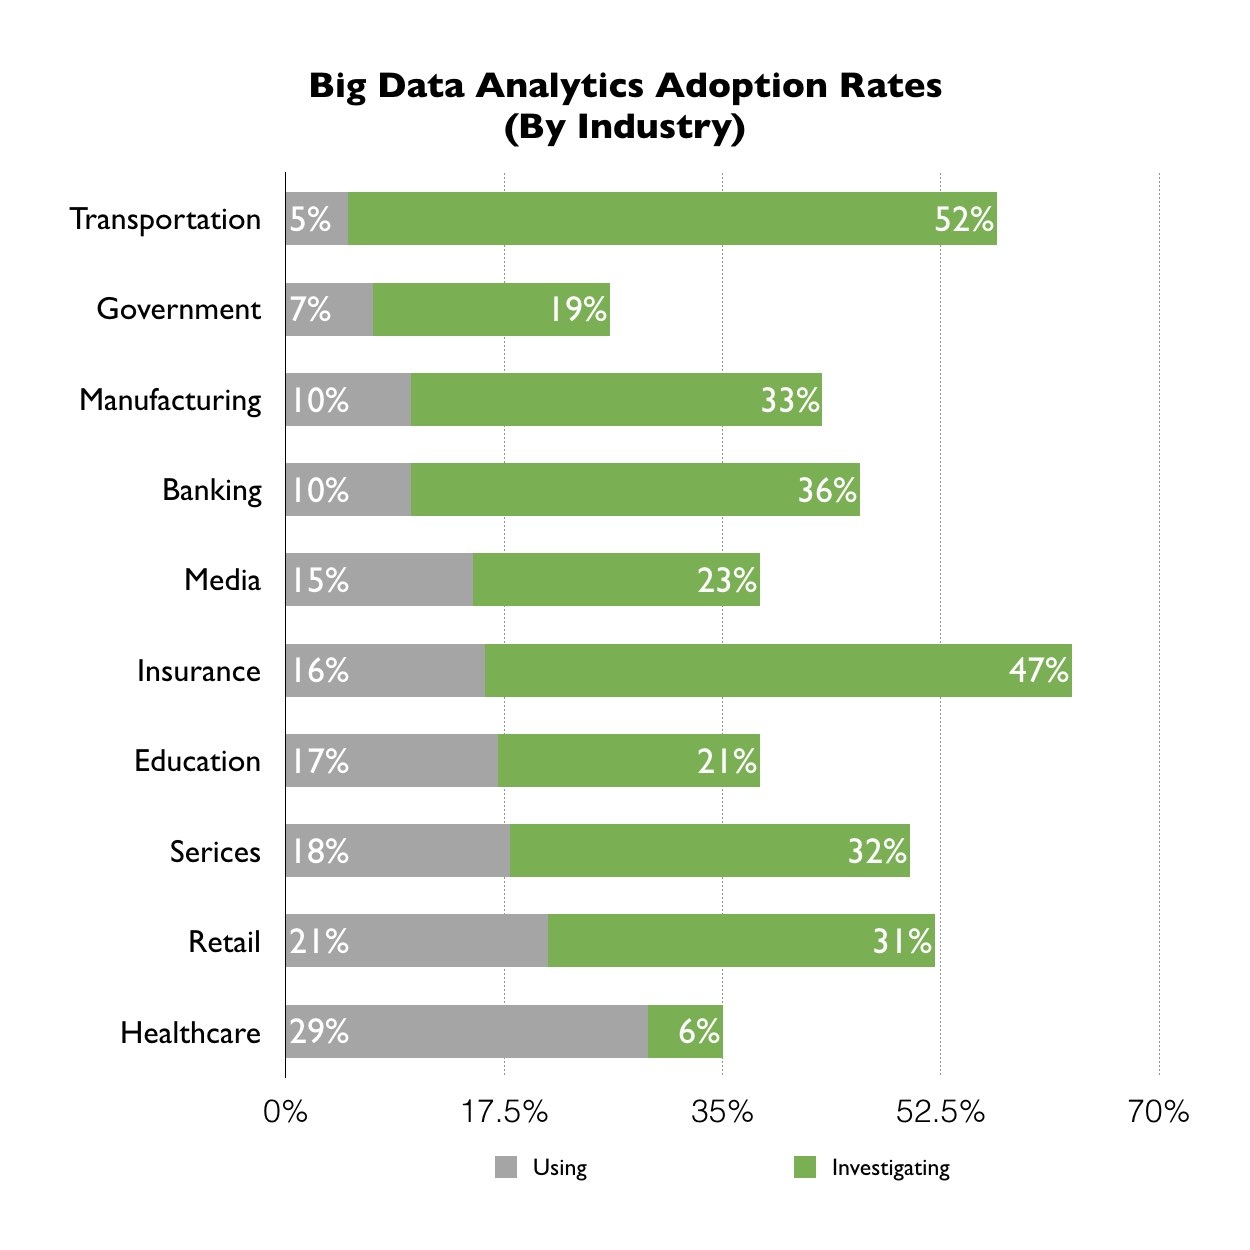 Big Data Analytics Adoption Rates By Industry